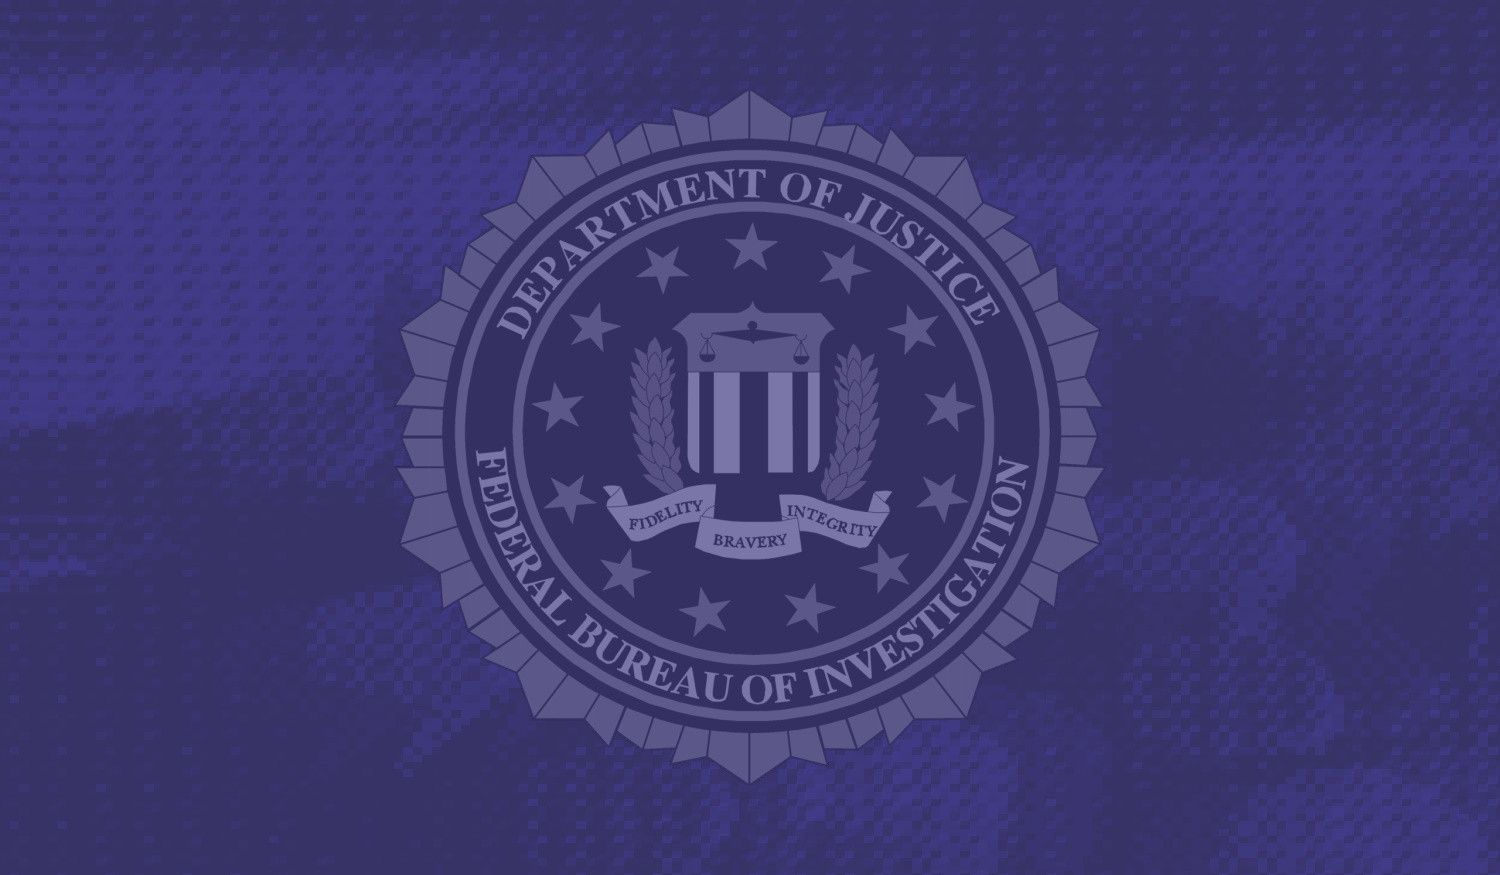 FBI: Conti ransomware gang attacked more than 400 orgs, including 911 centers